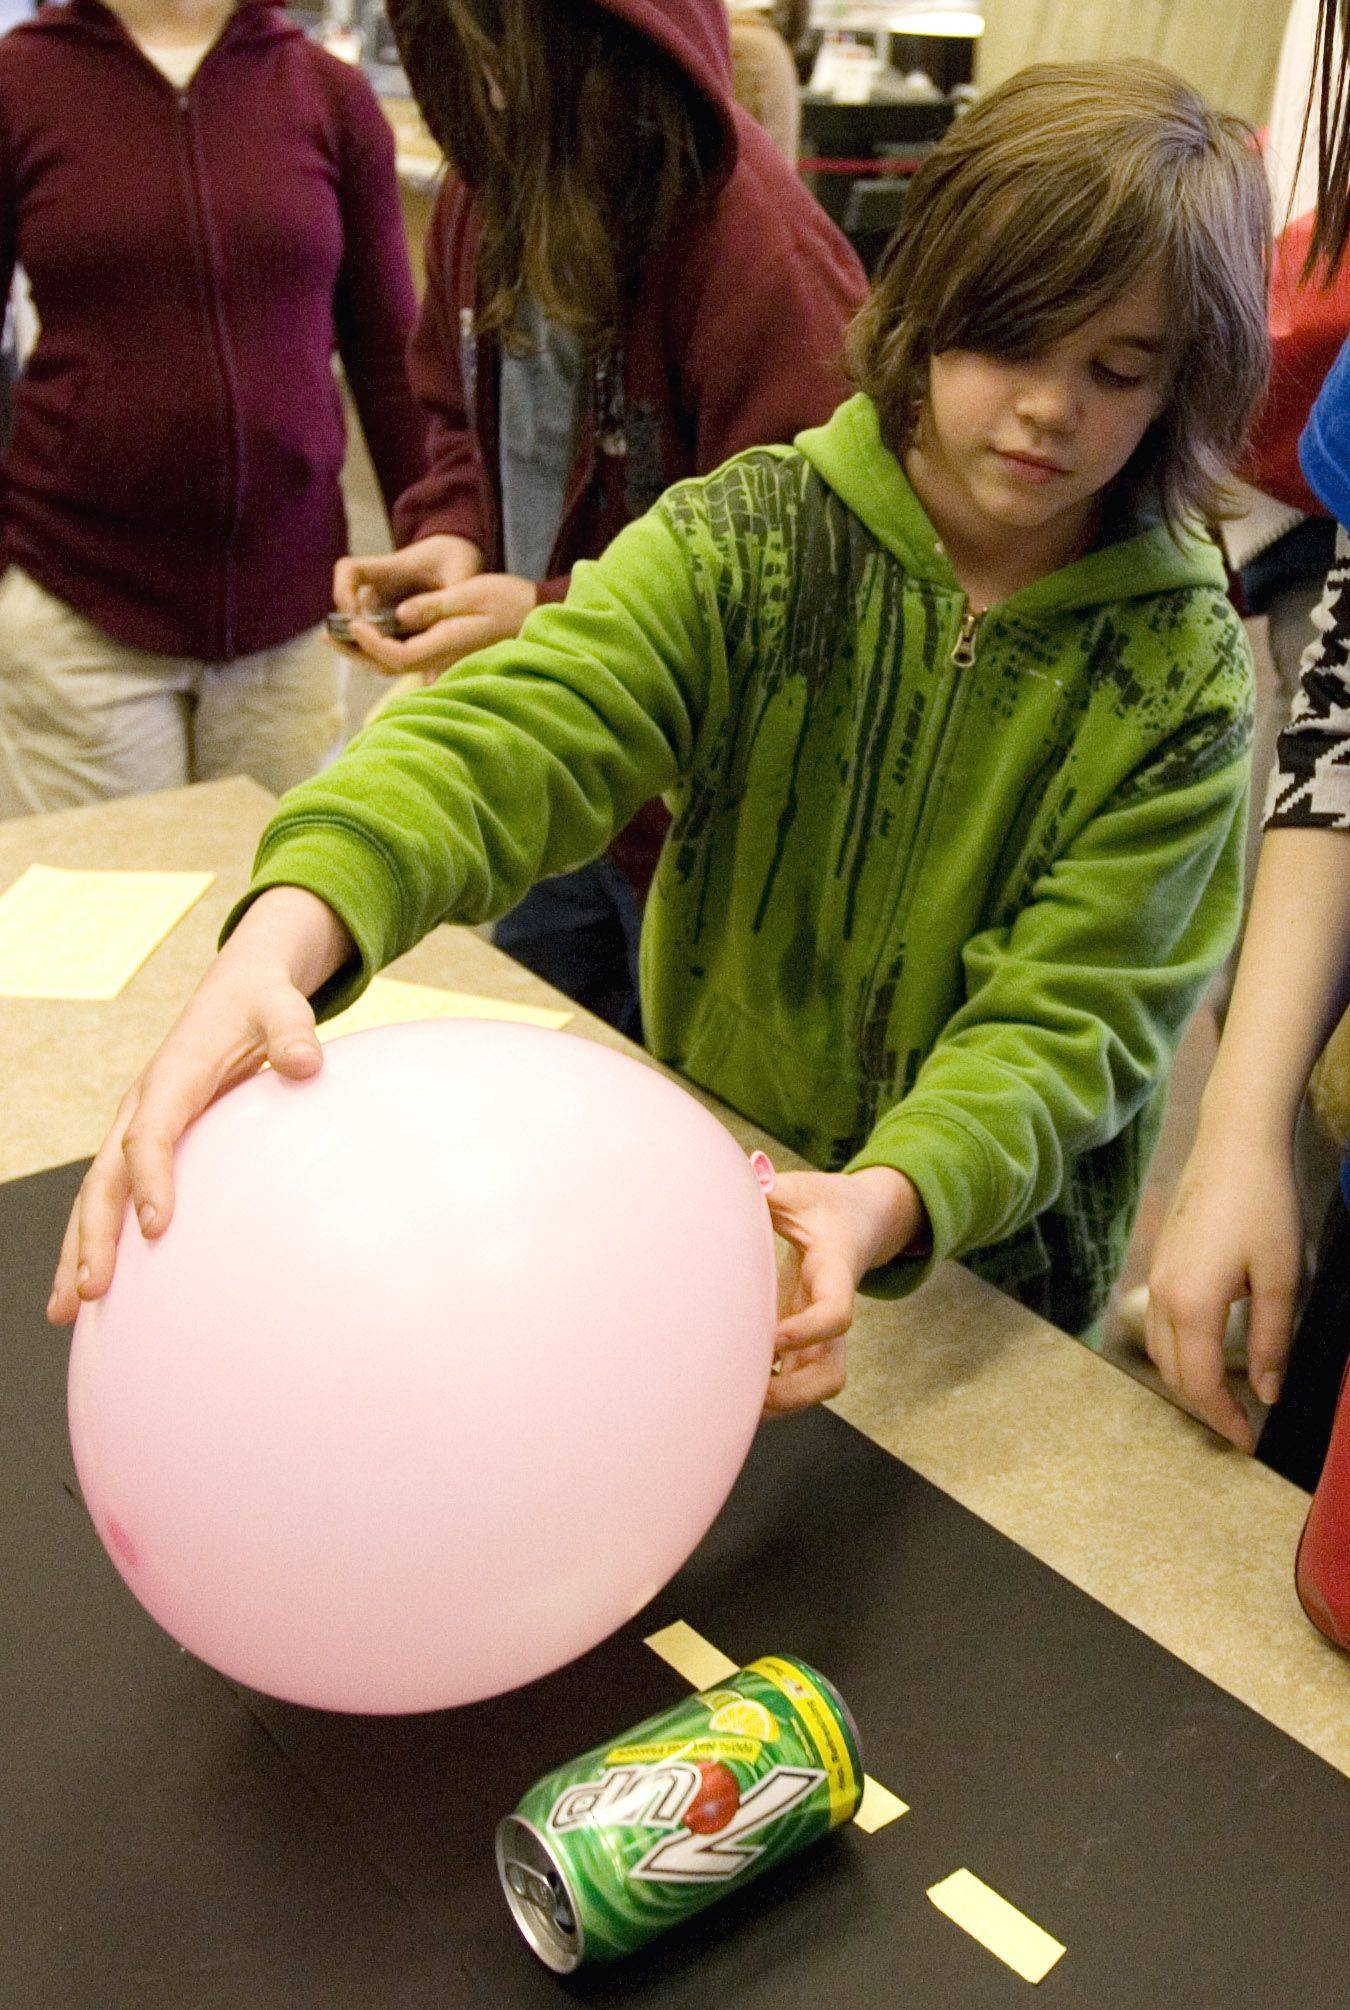 Harley Groleau, 9, of Medinah, tests a static electricity display during an open house on Sunday at Fermilab in Batavia.